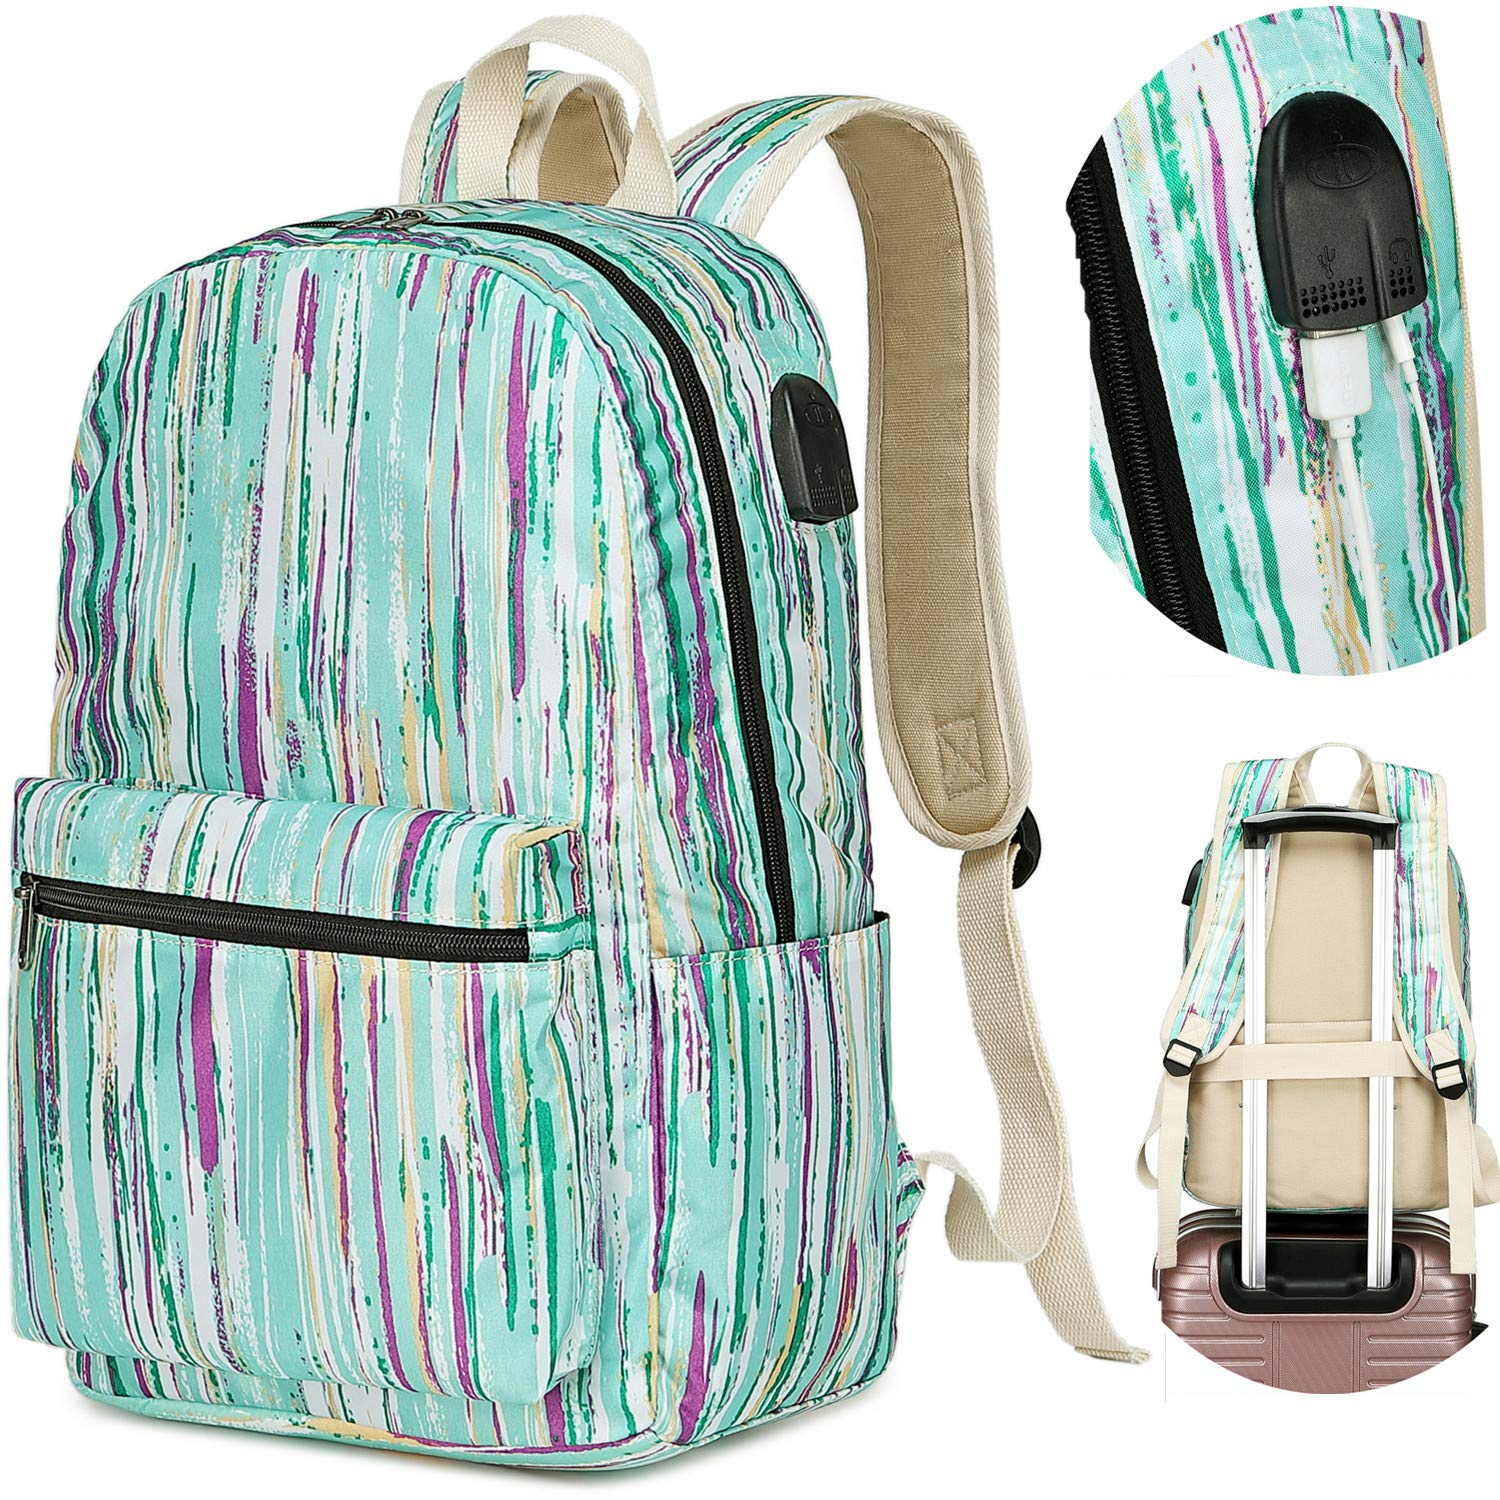 Girls Travel Laptop School Backpack Women College Bookbag 15.6 inch USB Daypack With Trolley Case Slot Green-0056